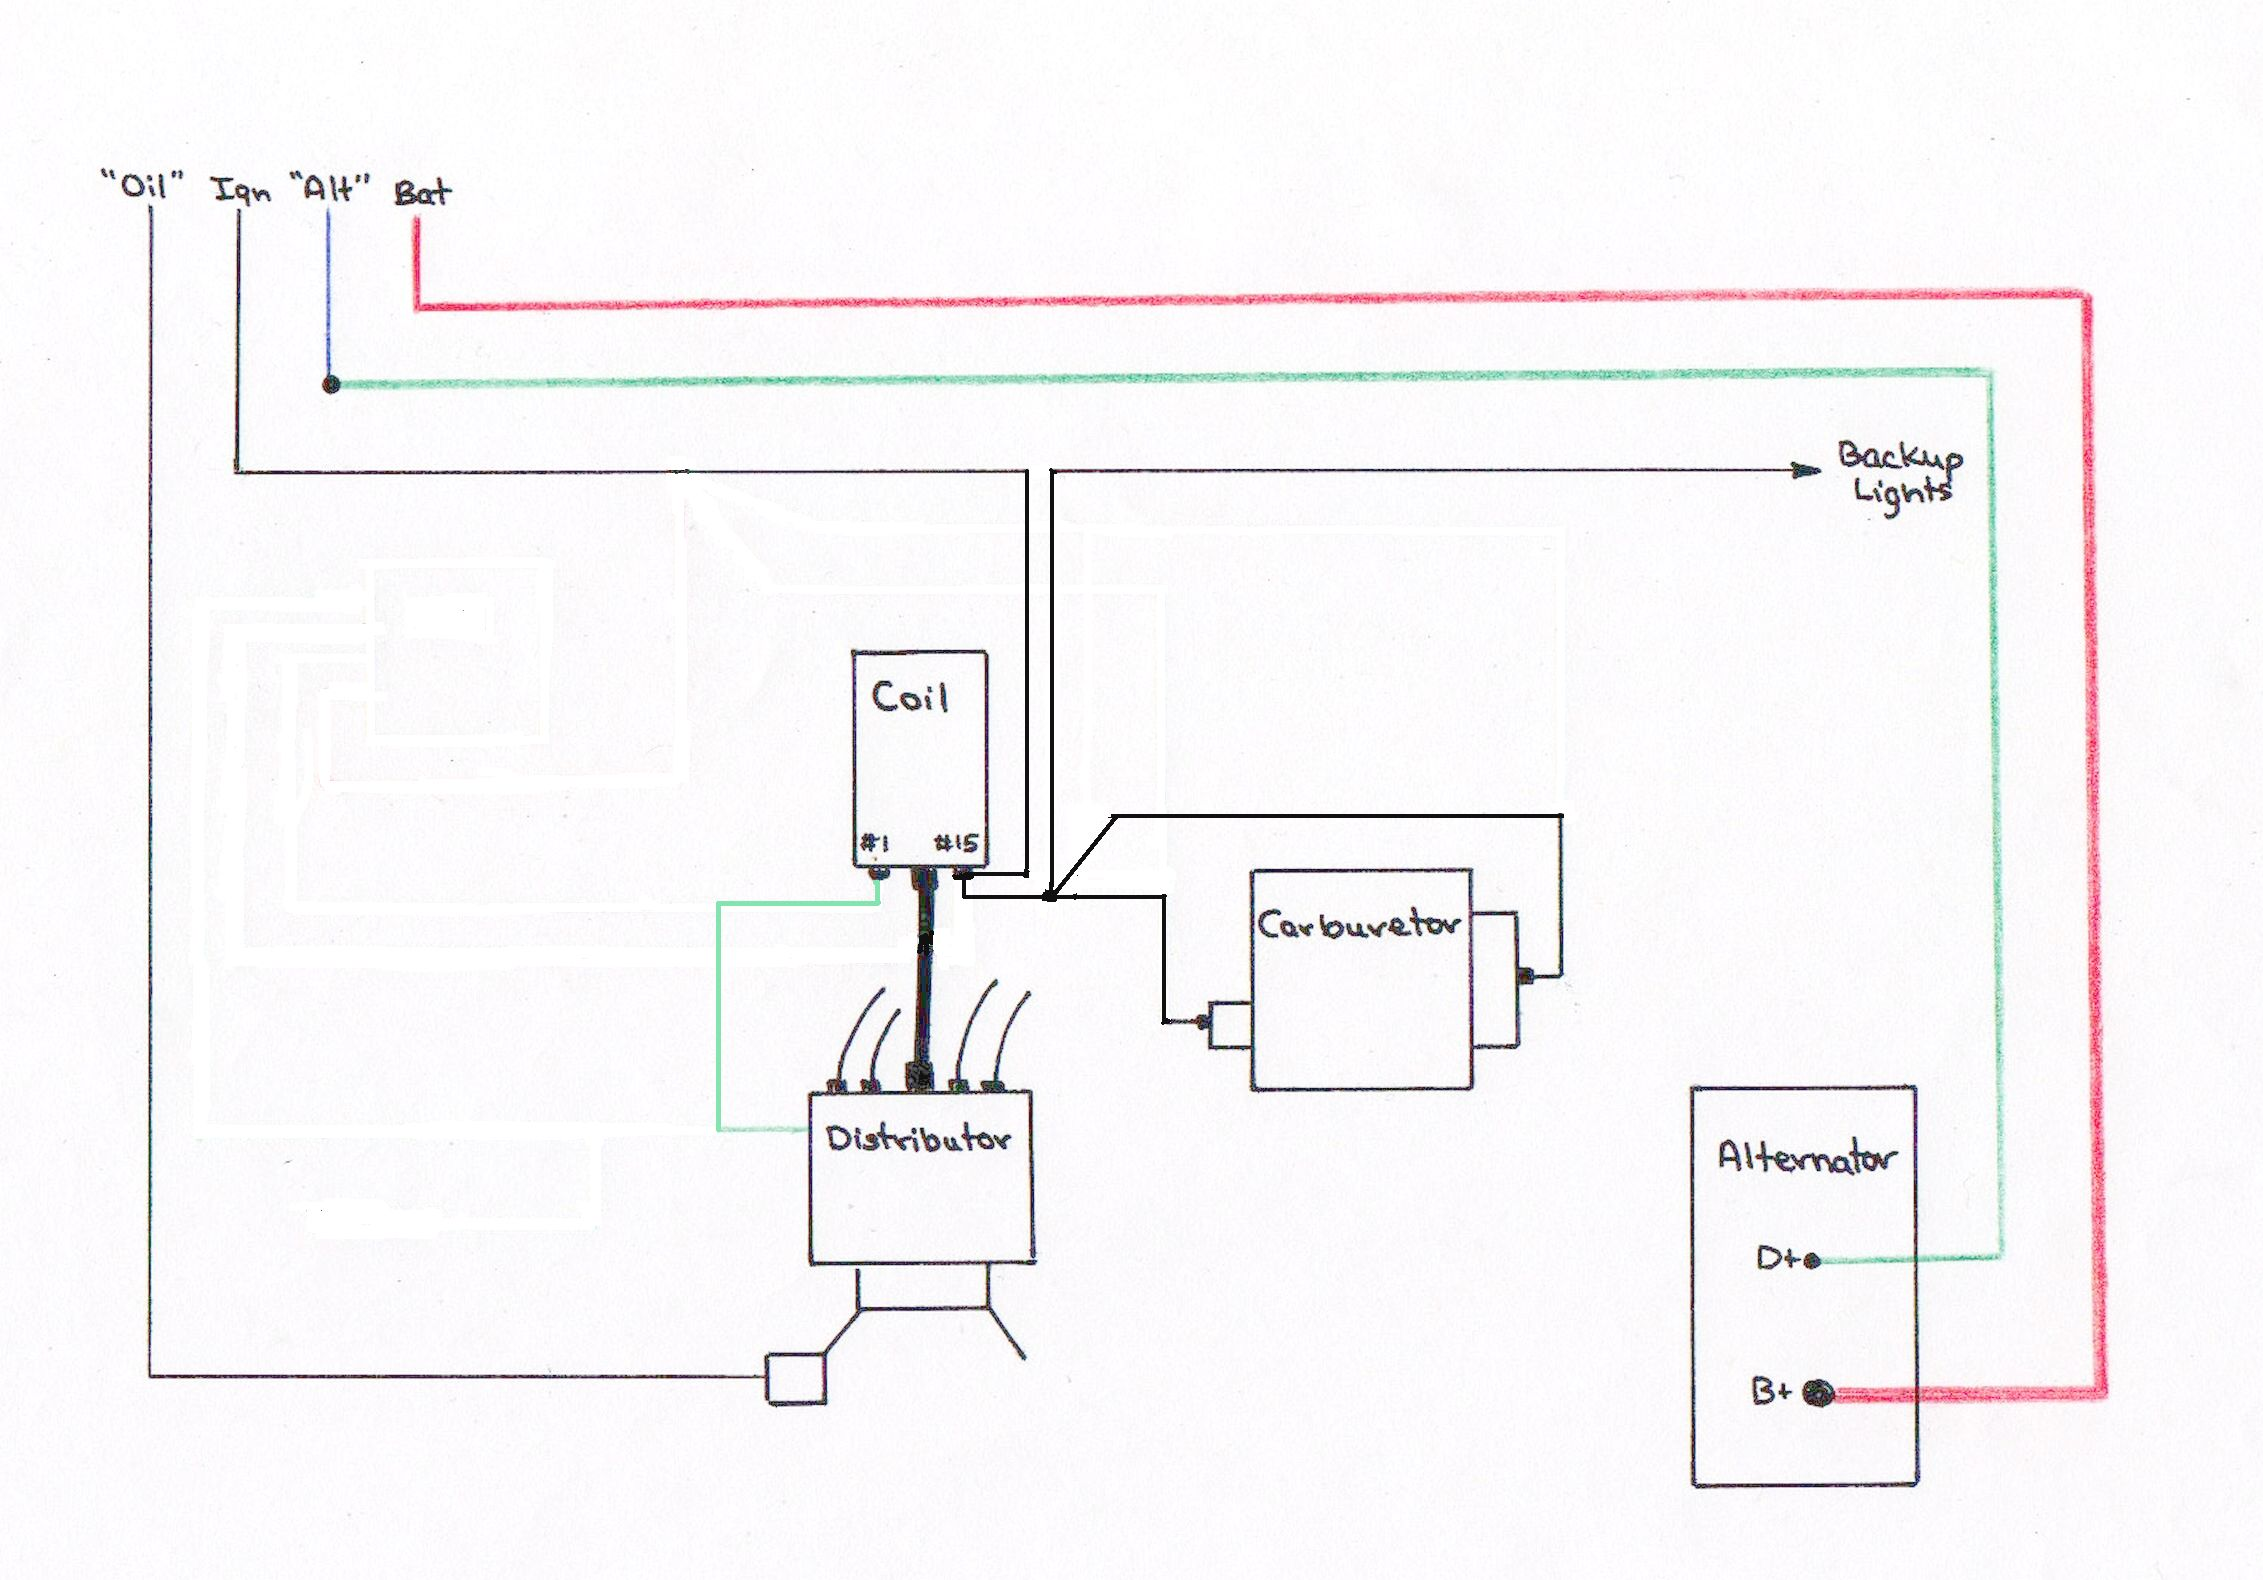 handdrawn_schematic alternator wiring vw generator to alternator conversion wiring diagram at crackthecode.co